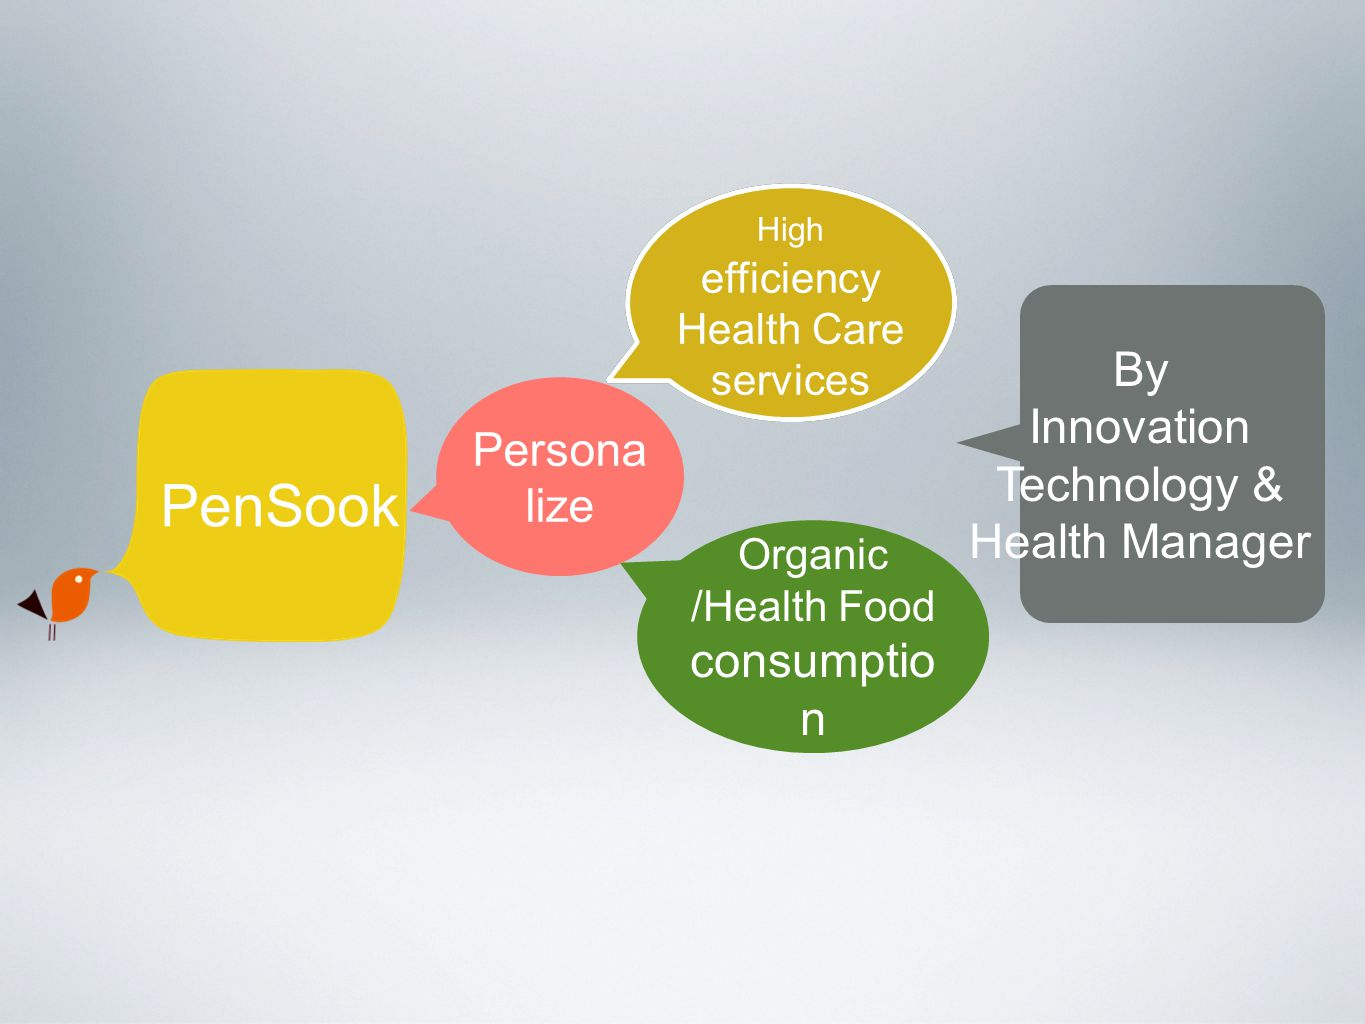 PenSook High efficiency Health Care services High efficiency Health Care services Organic /Health Food consumptio n Persona lize By Innovation Technology & Health Manager